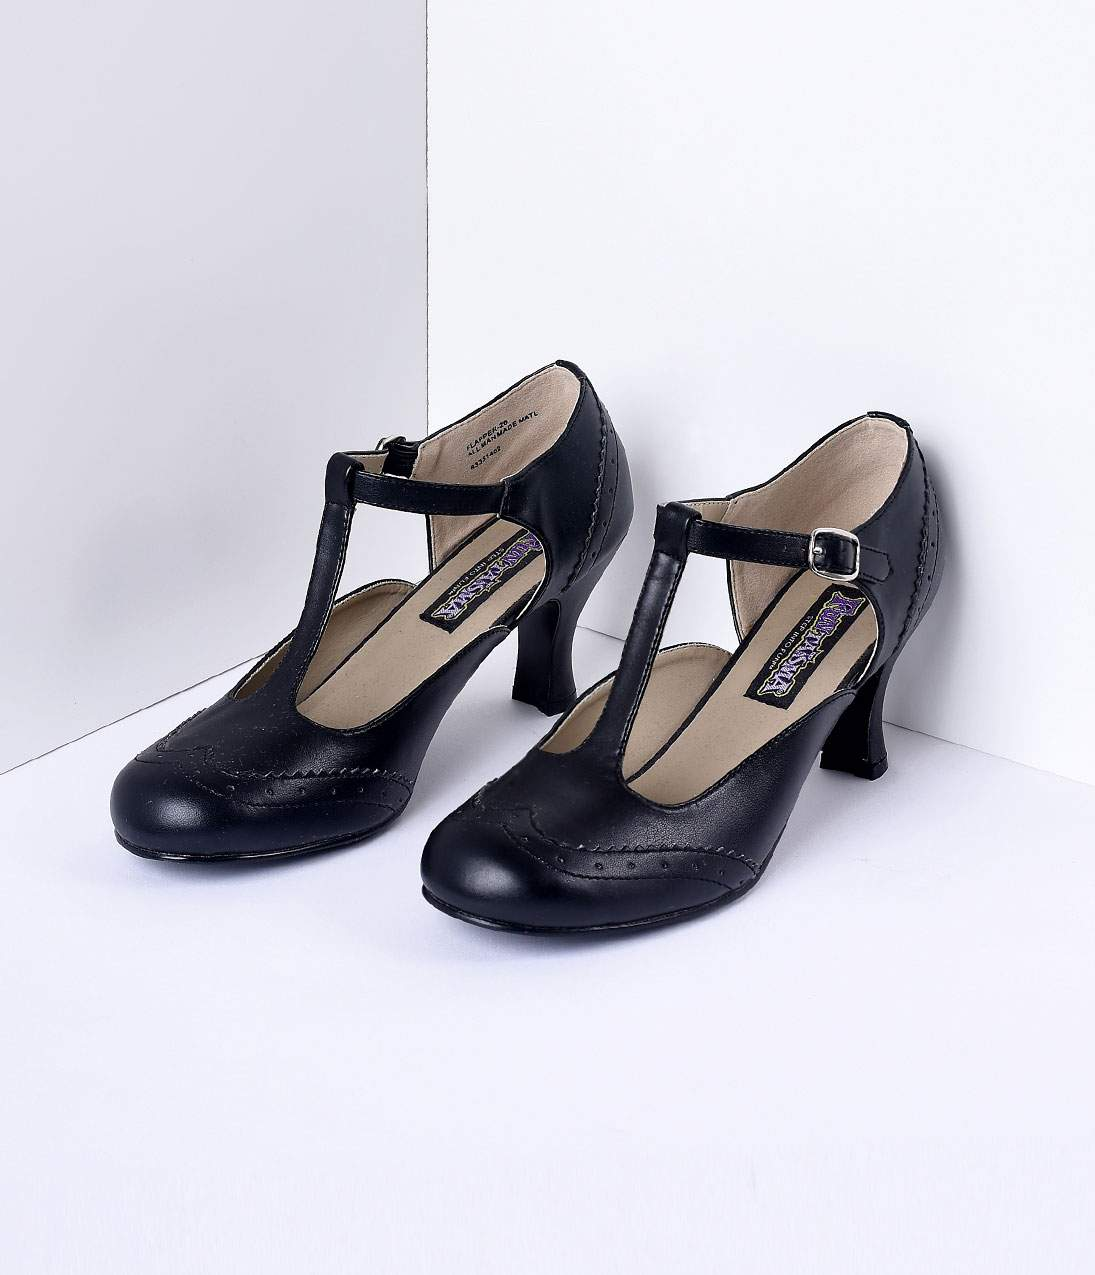 Women's 1920s Shoe Styles and History Black T-Strap Mary Jane Heels $68.00 AT vintagedancer.com